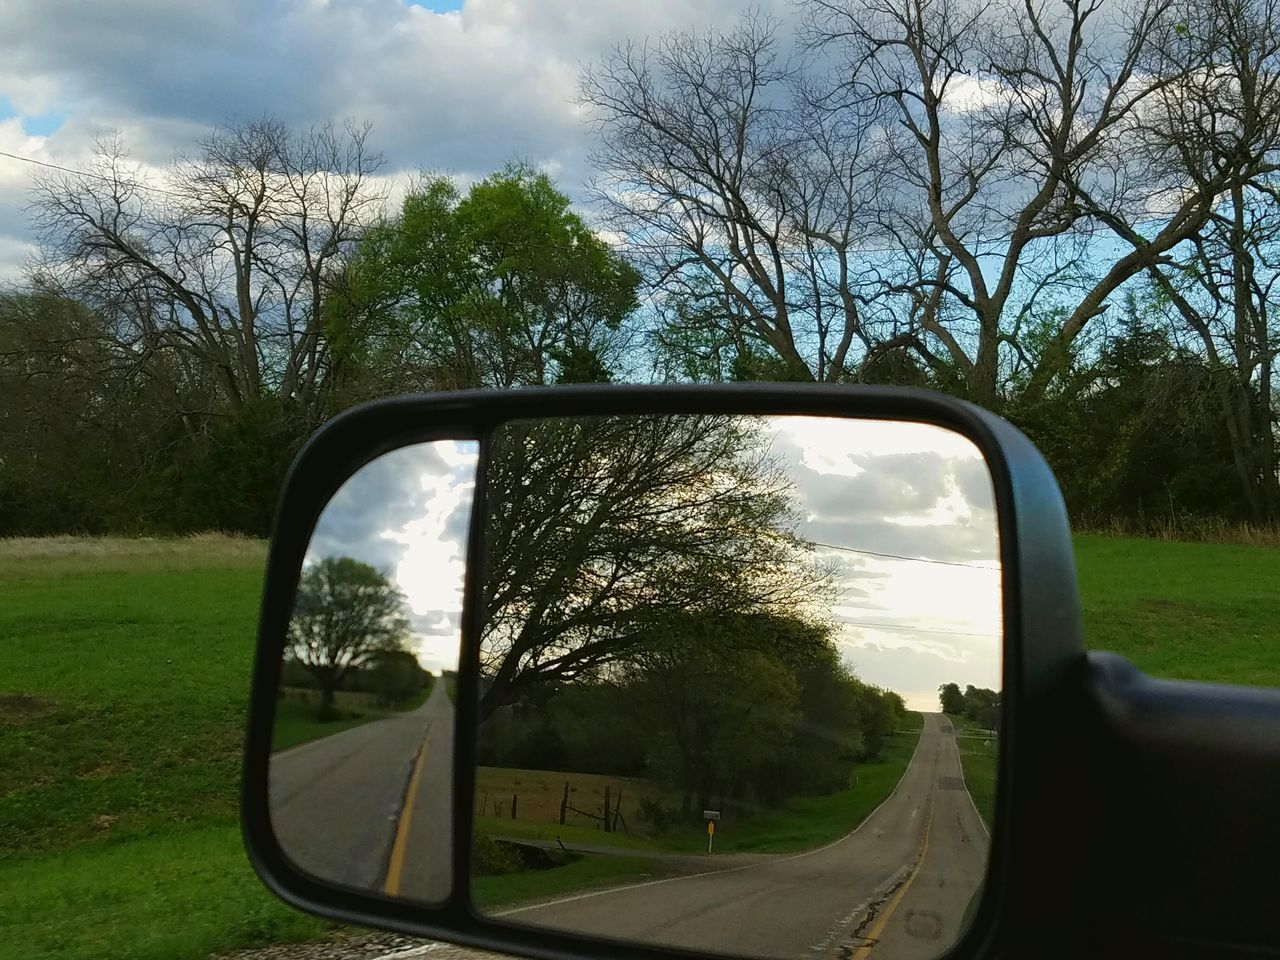 tree, side-view mirror, reflection, sky, grass, car, bare tree, nature, day, outdoors, transportation, land vehicle, road, landscape, vehicle mirror, no people, branch, beauty in nature